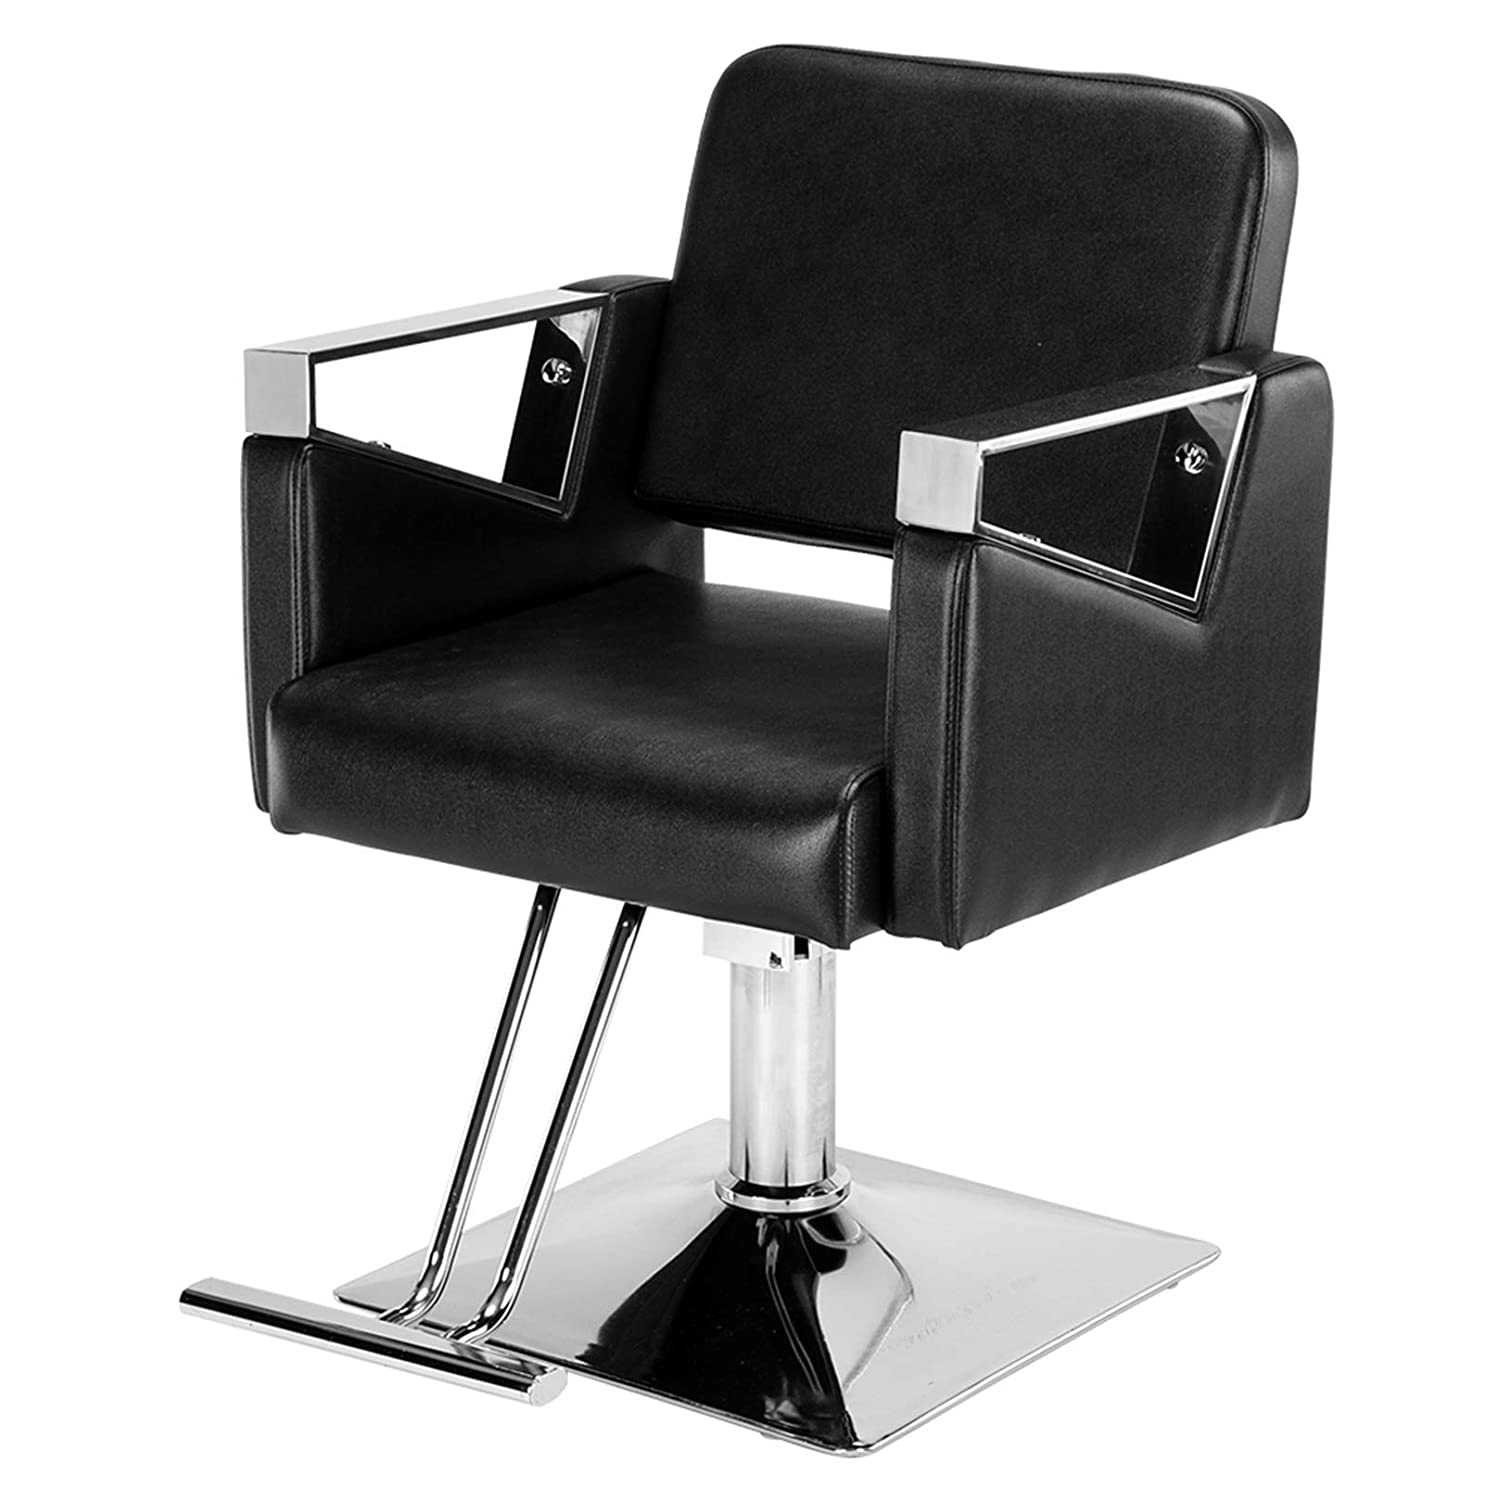 All Purpose Recline Hydraulic Barber Heavy Spa Genuine Free Shipping Don't miss the campaign Chair Duty Salon